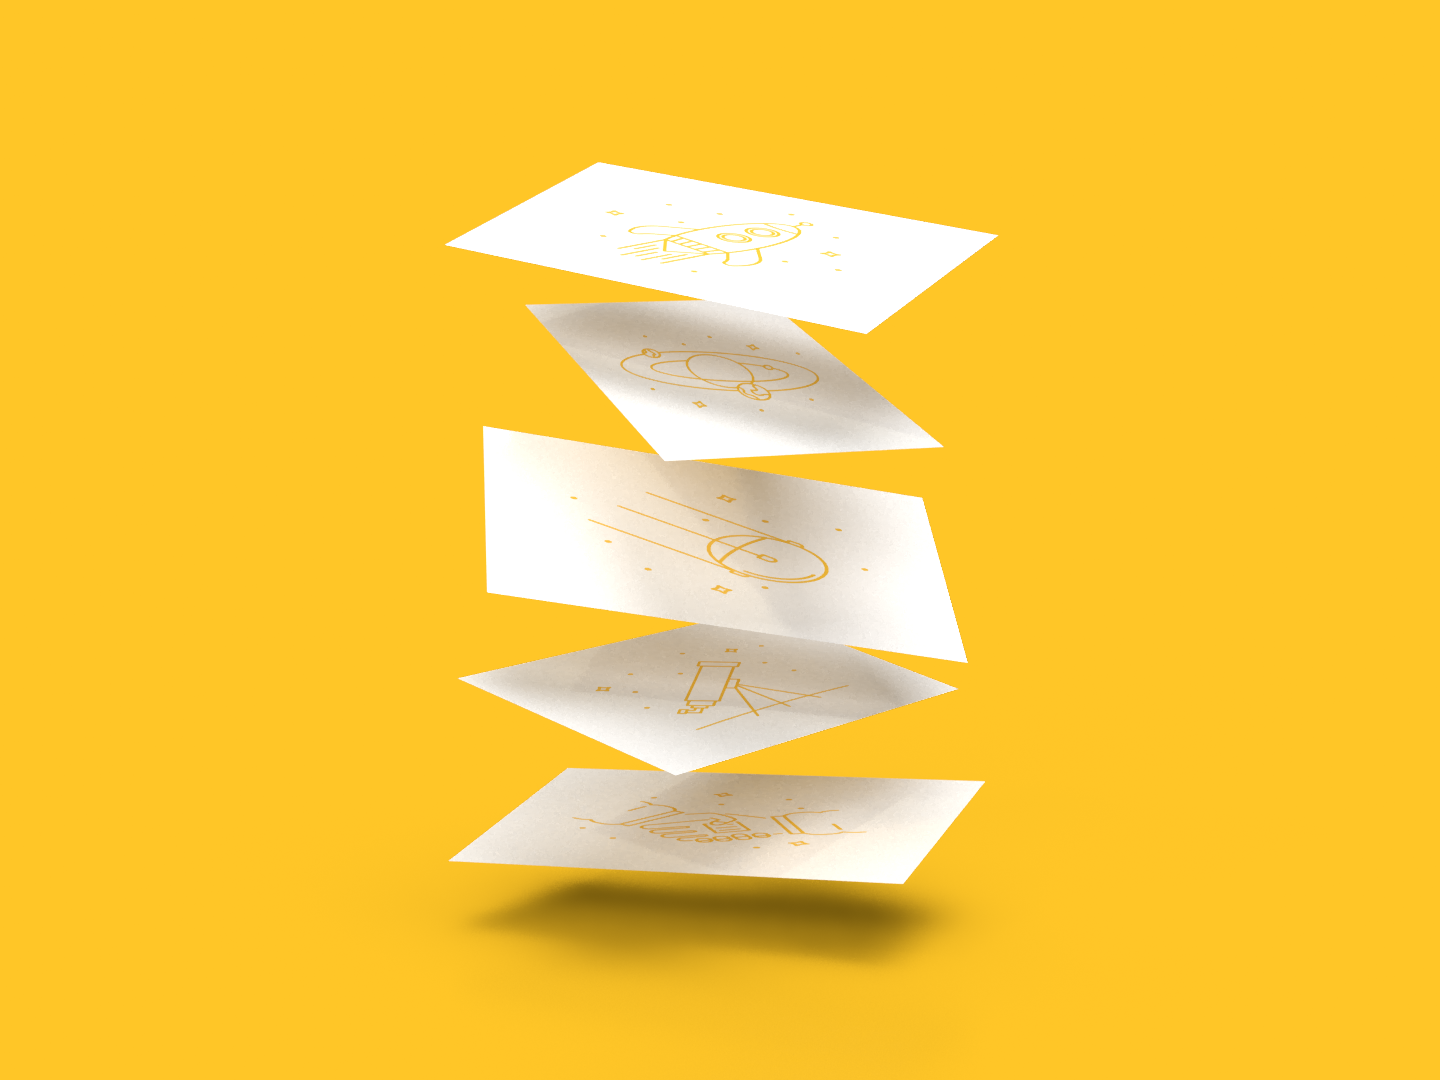 Space Icon Business Cards model render 3d yellow adobe dimension spacesuit spaceman rocketship rocket sun stars satelite handshake star planet telescope galaxy business card icon space